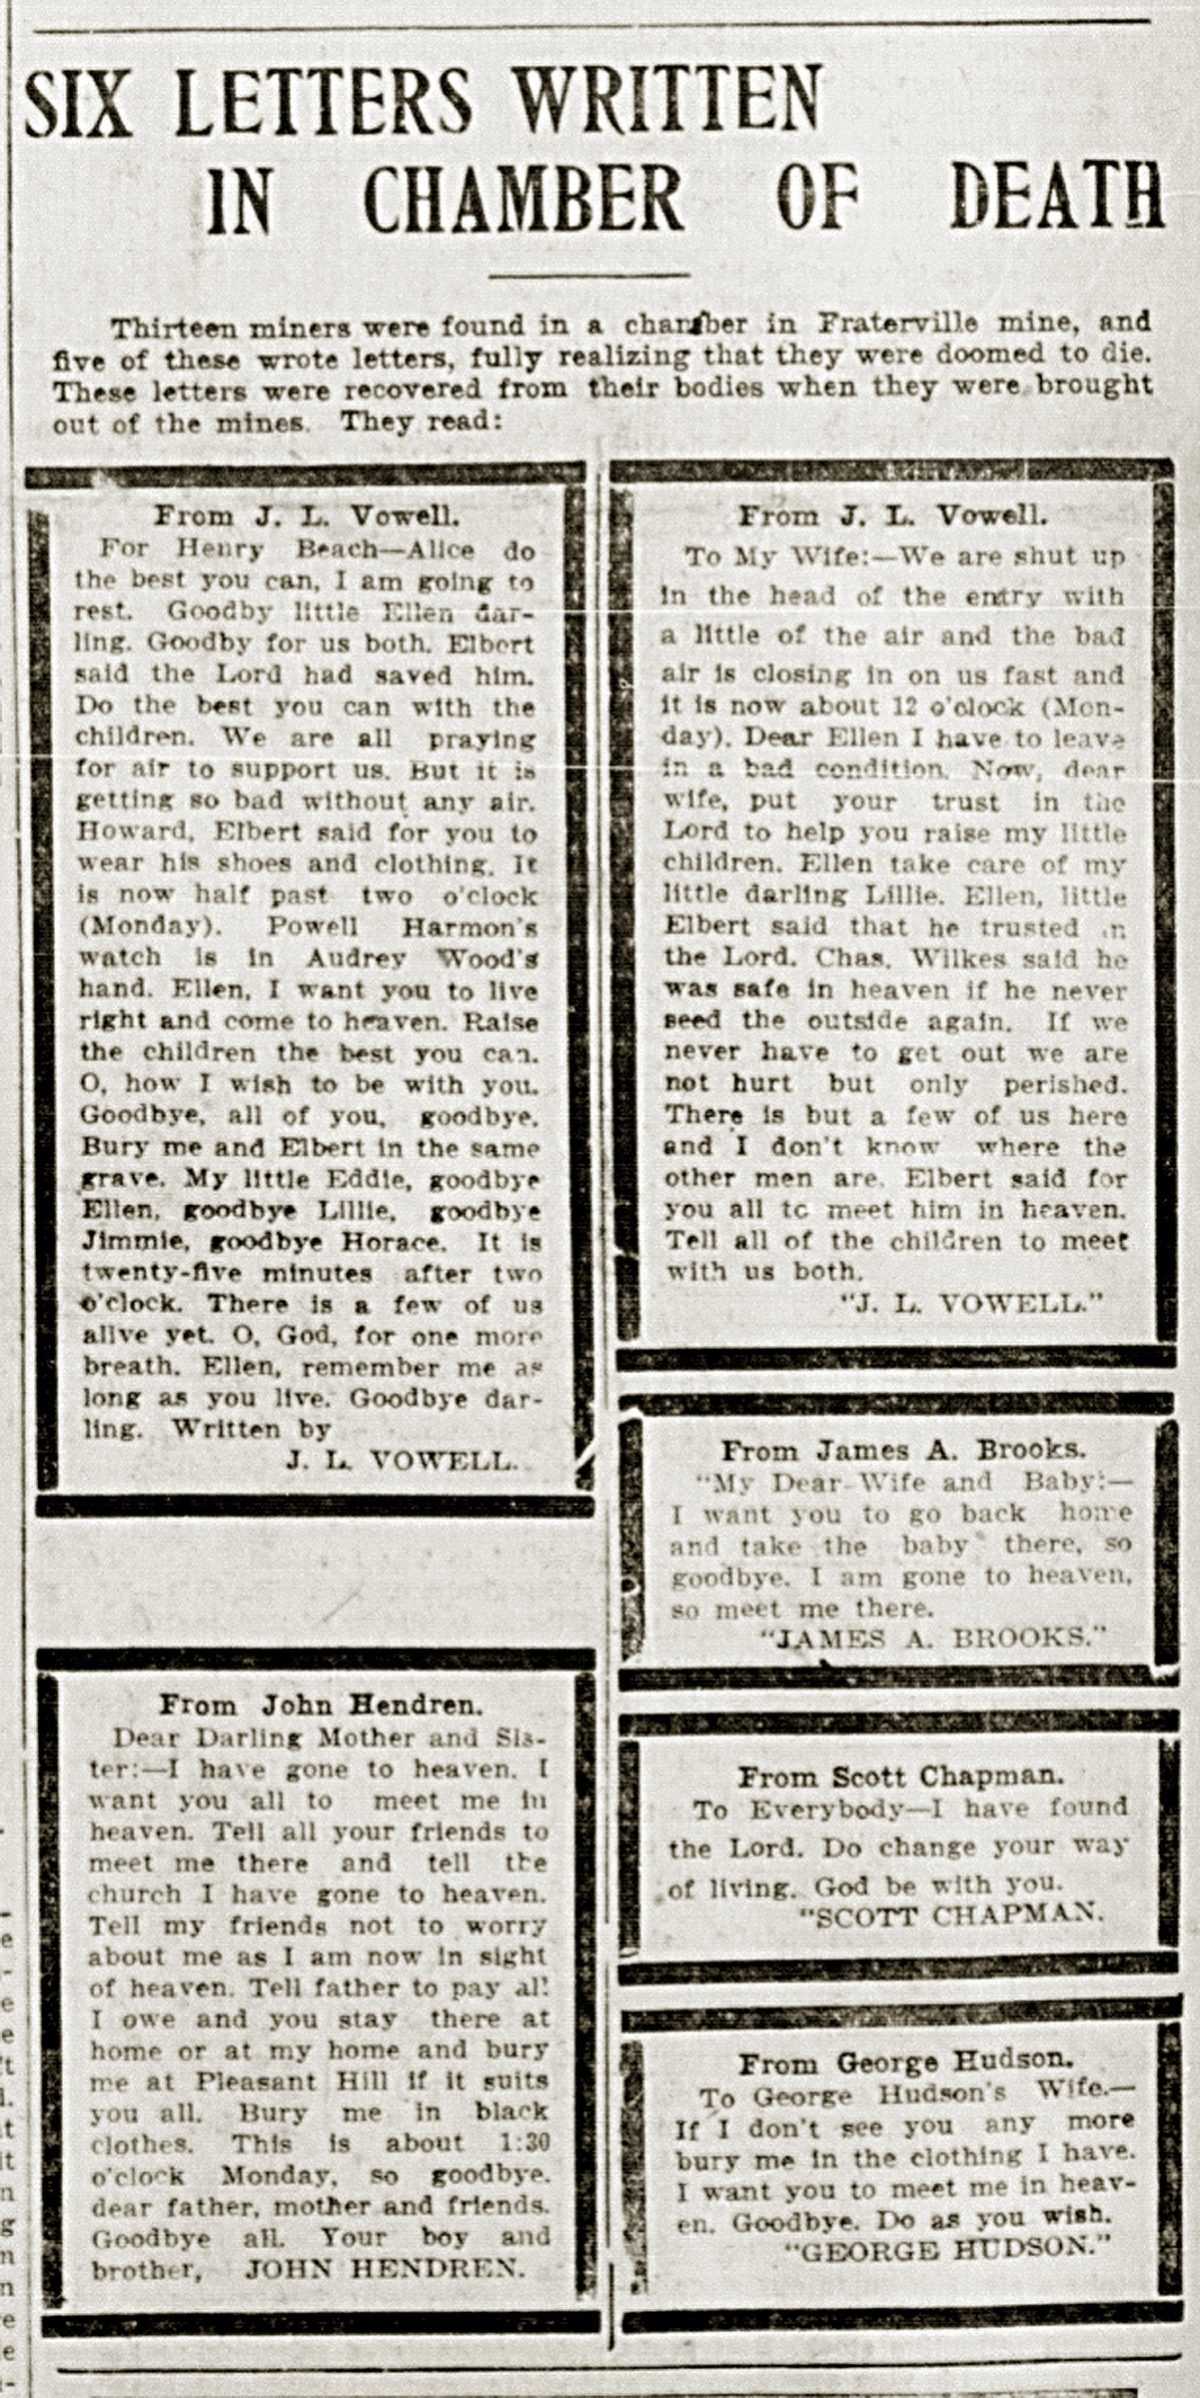 """""""Six Letters Written in Chamber of Death"""" Knoxville Sentinel, May 21, 1902 Newspaper Microfilm"""